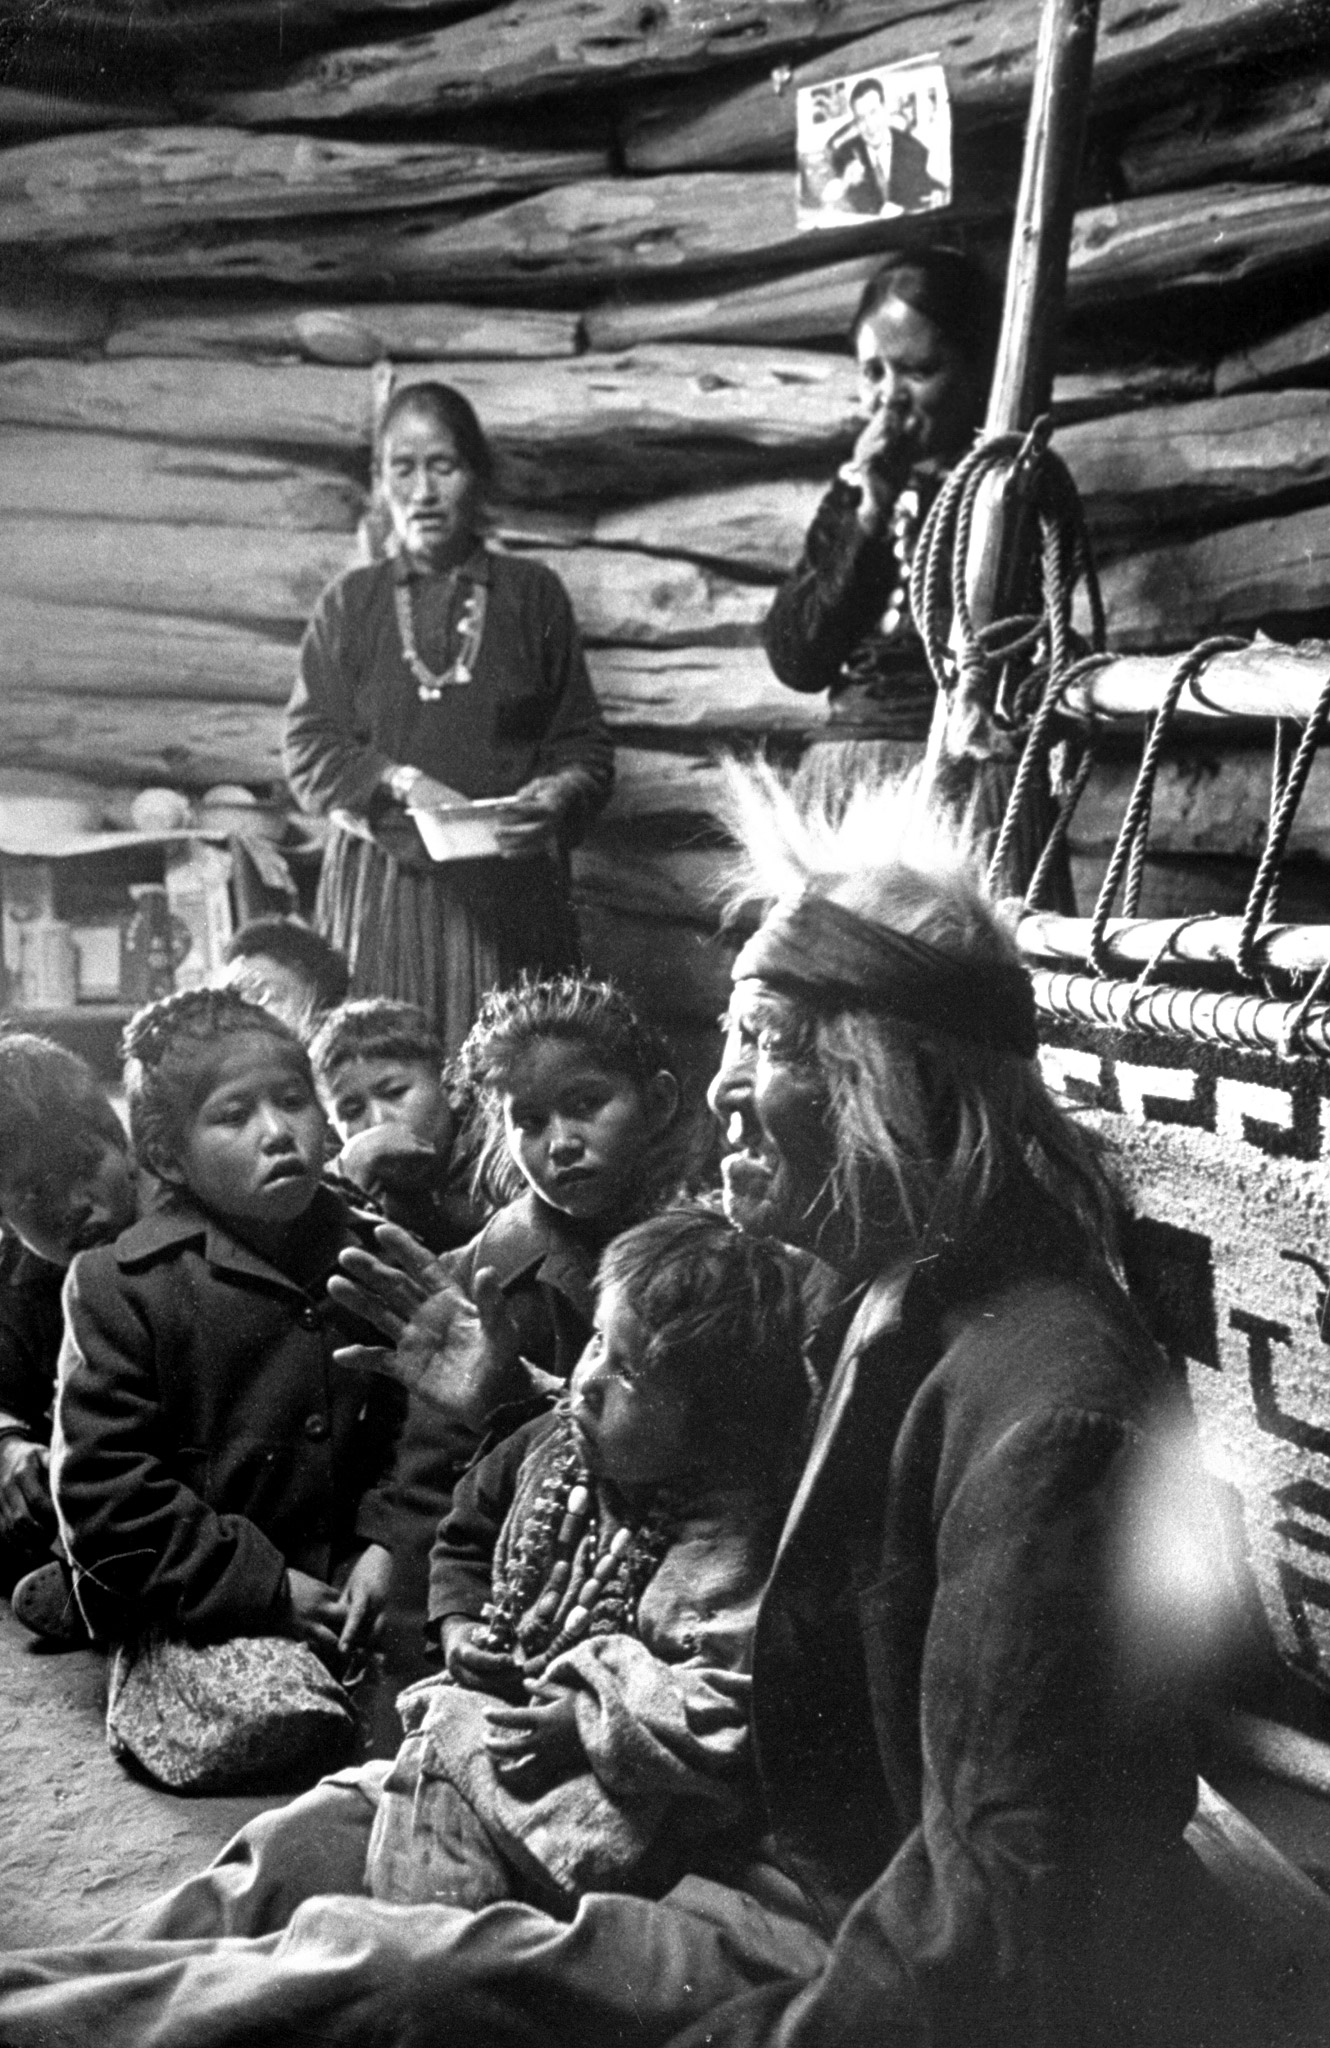 Seated close to the evening fire, old man Gray Mountain, 91, tells his small grandchildren legends about the early days of the Navajo people.